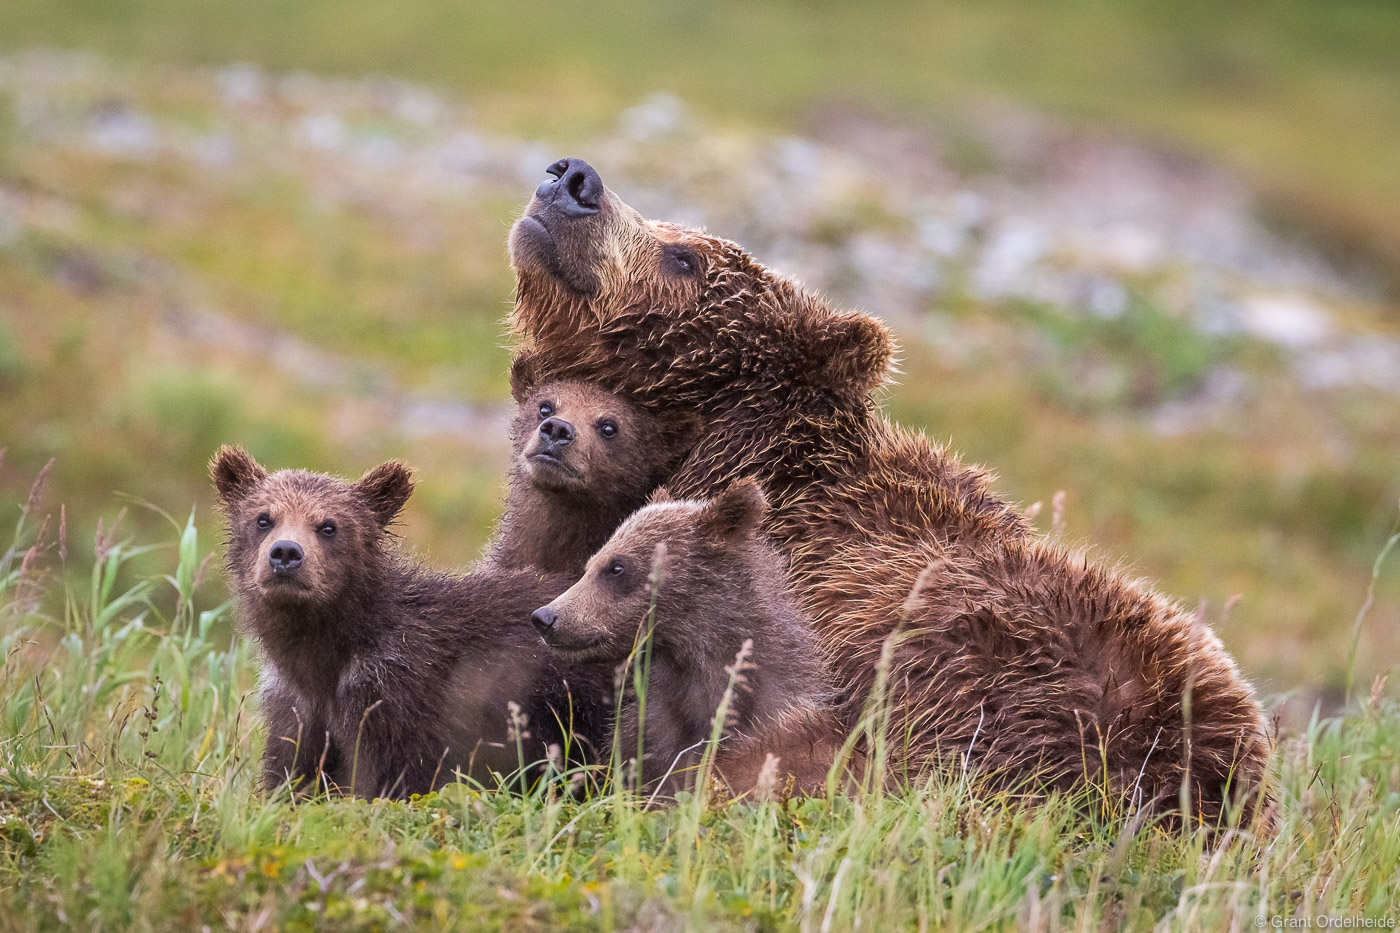 A mother bear with three young cubs in Alaska's Katmai National Park and Preserve.